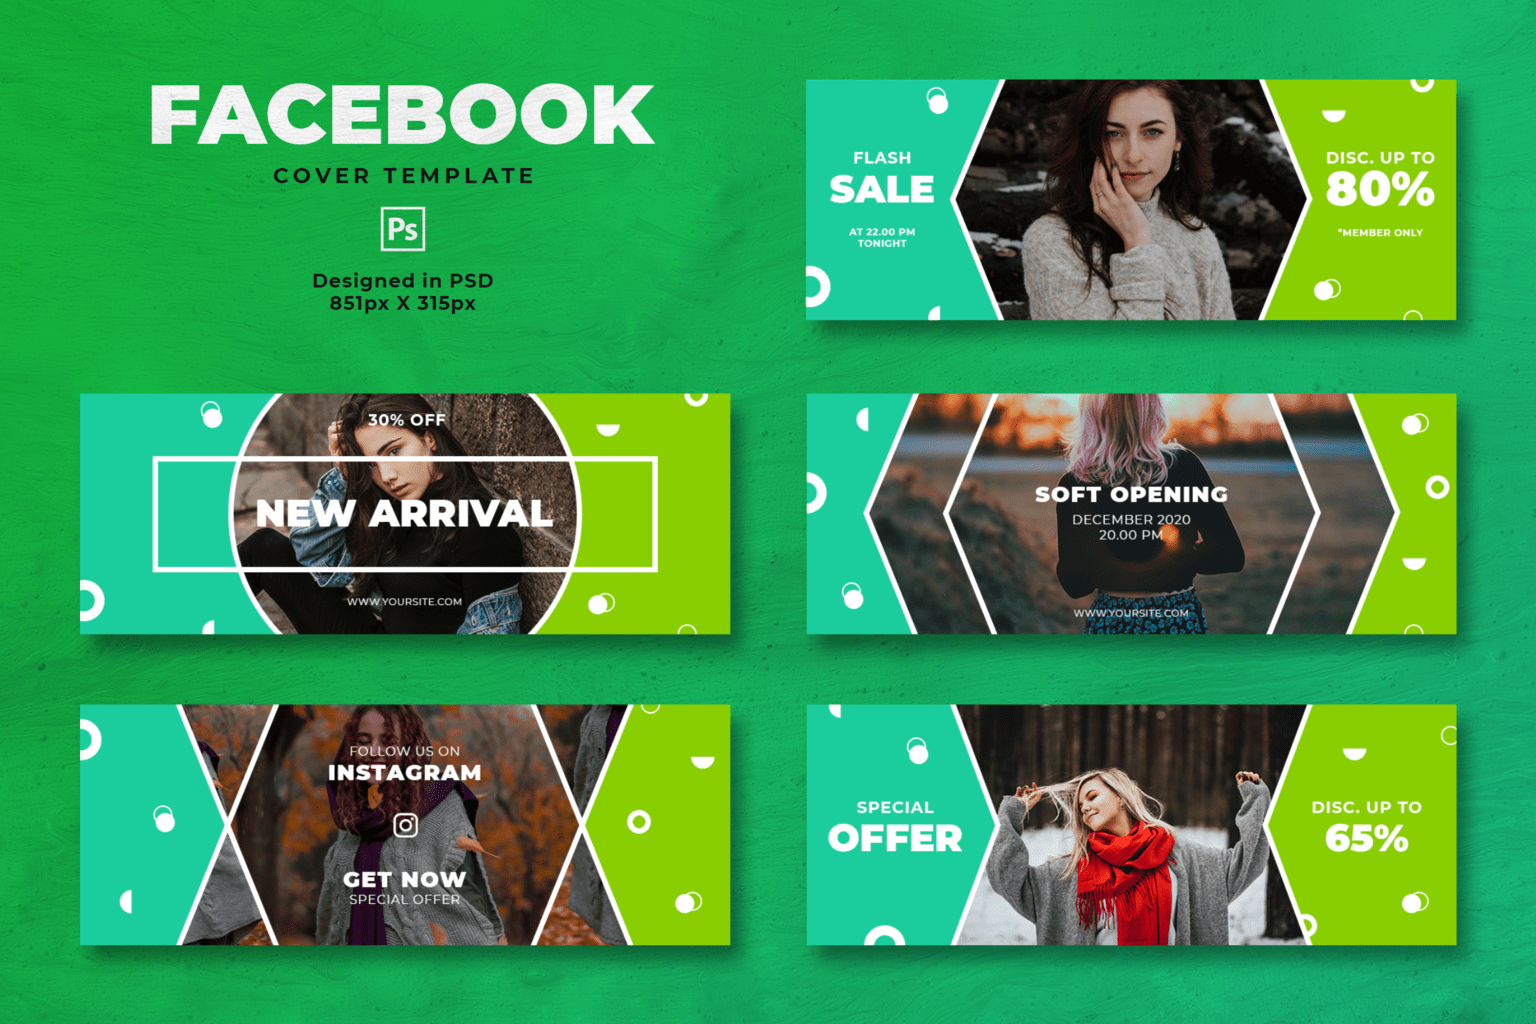 facebook cover trendy fashion sales